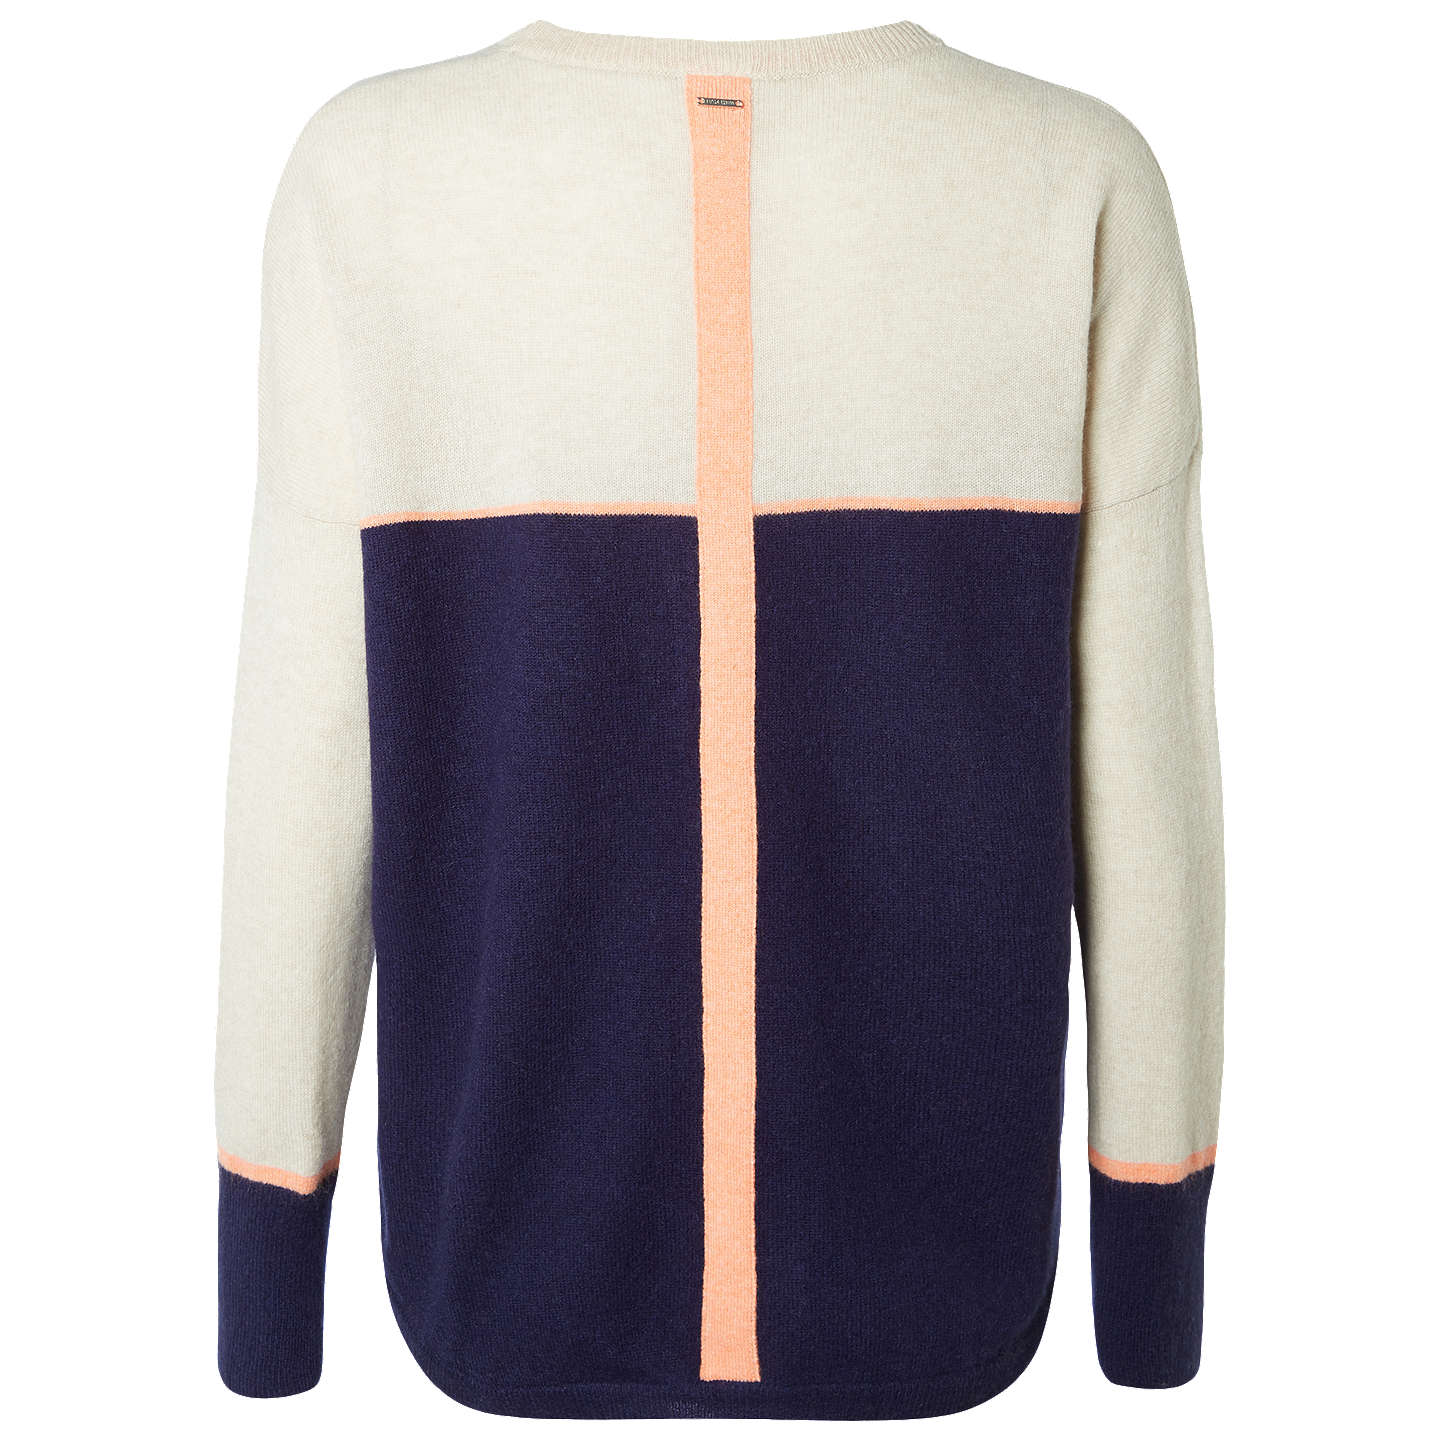 BuyWhite Stuff Jennie Cashmere Jumper, Oat/Navy, 6 Online at johnlewis.com